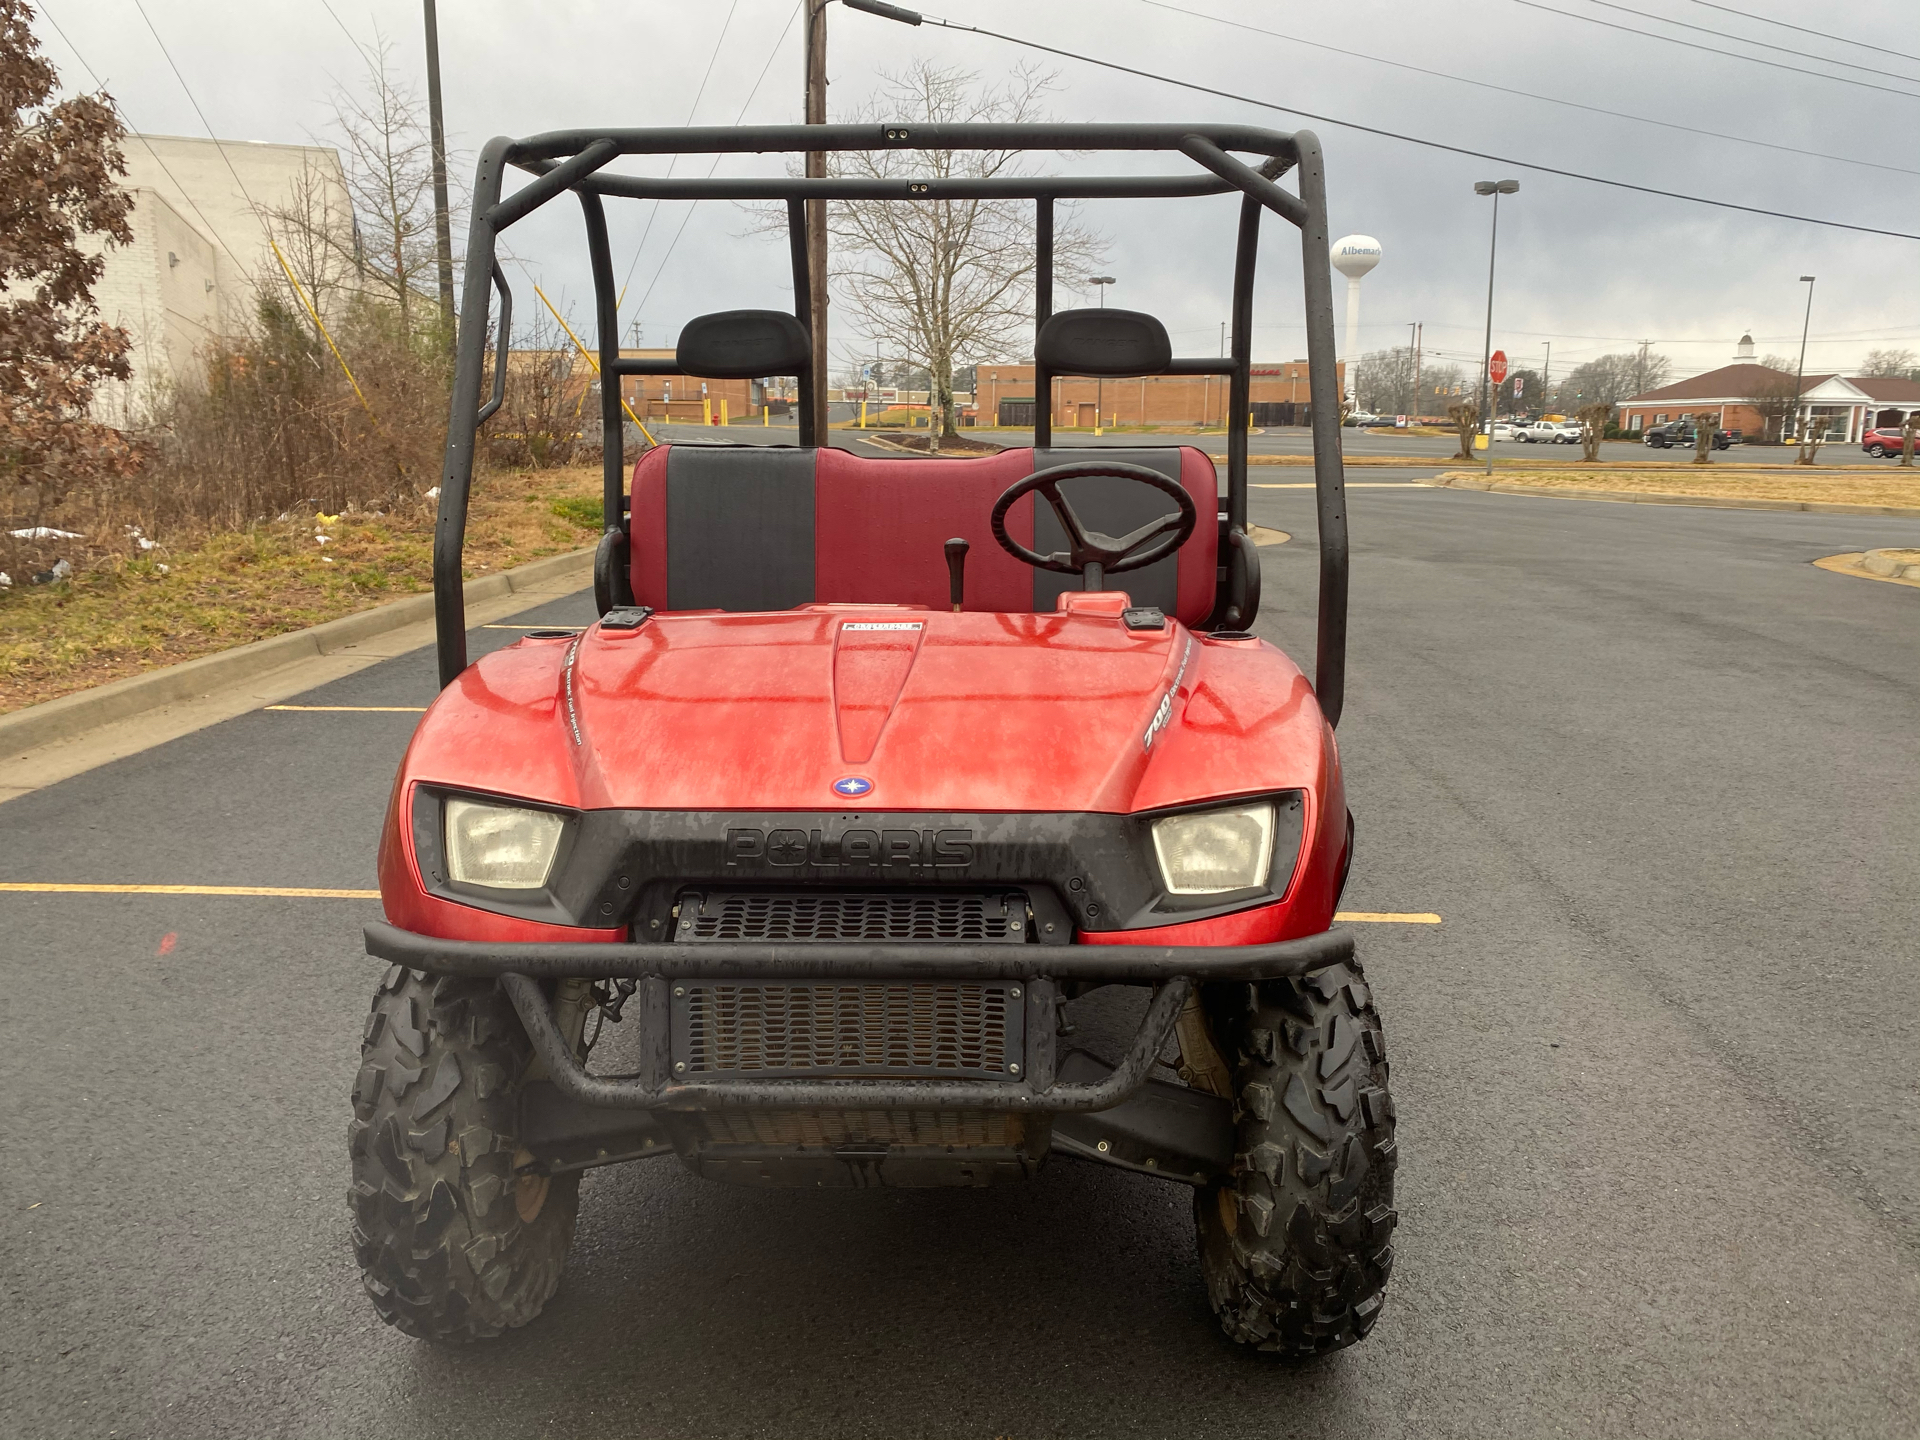 2007 Polaris Ranger XP Midnight Red Limited Edition in Albemarle, North Carolina - Photo 3